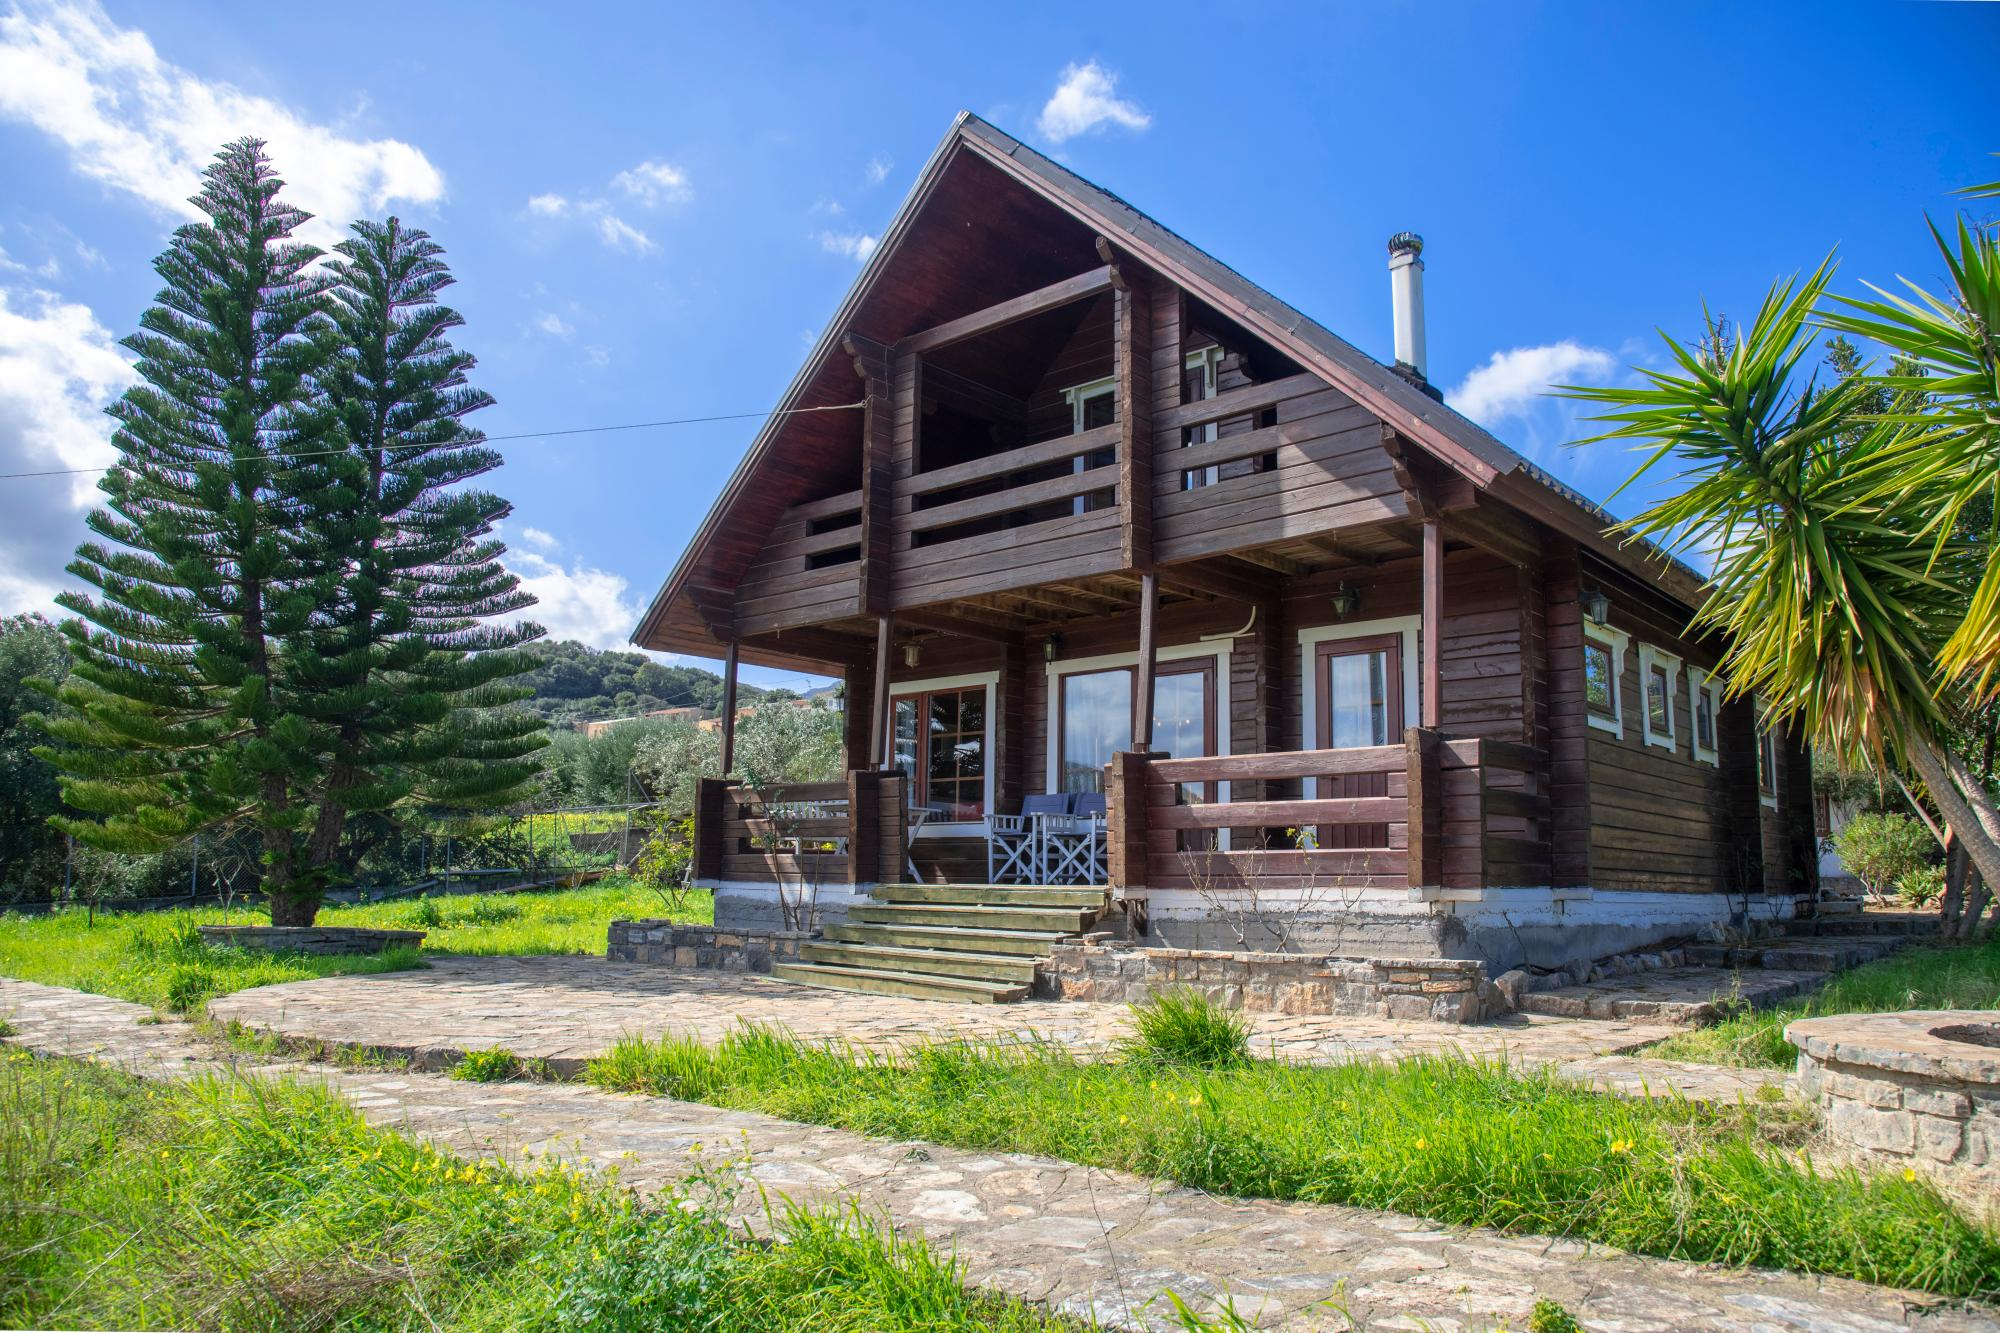 Beautiful log cabin, in large plot with nice views.